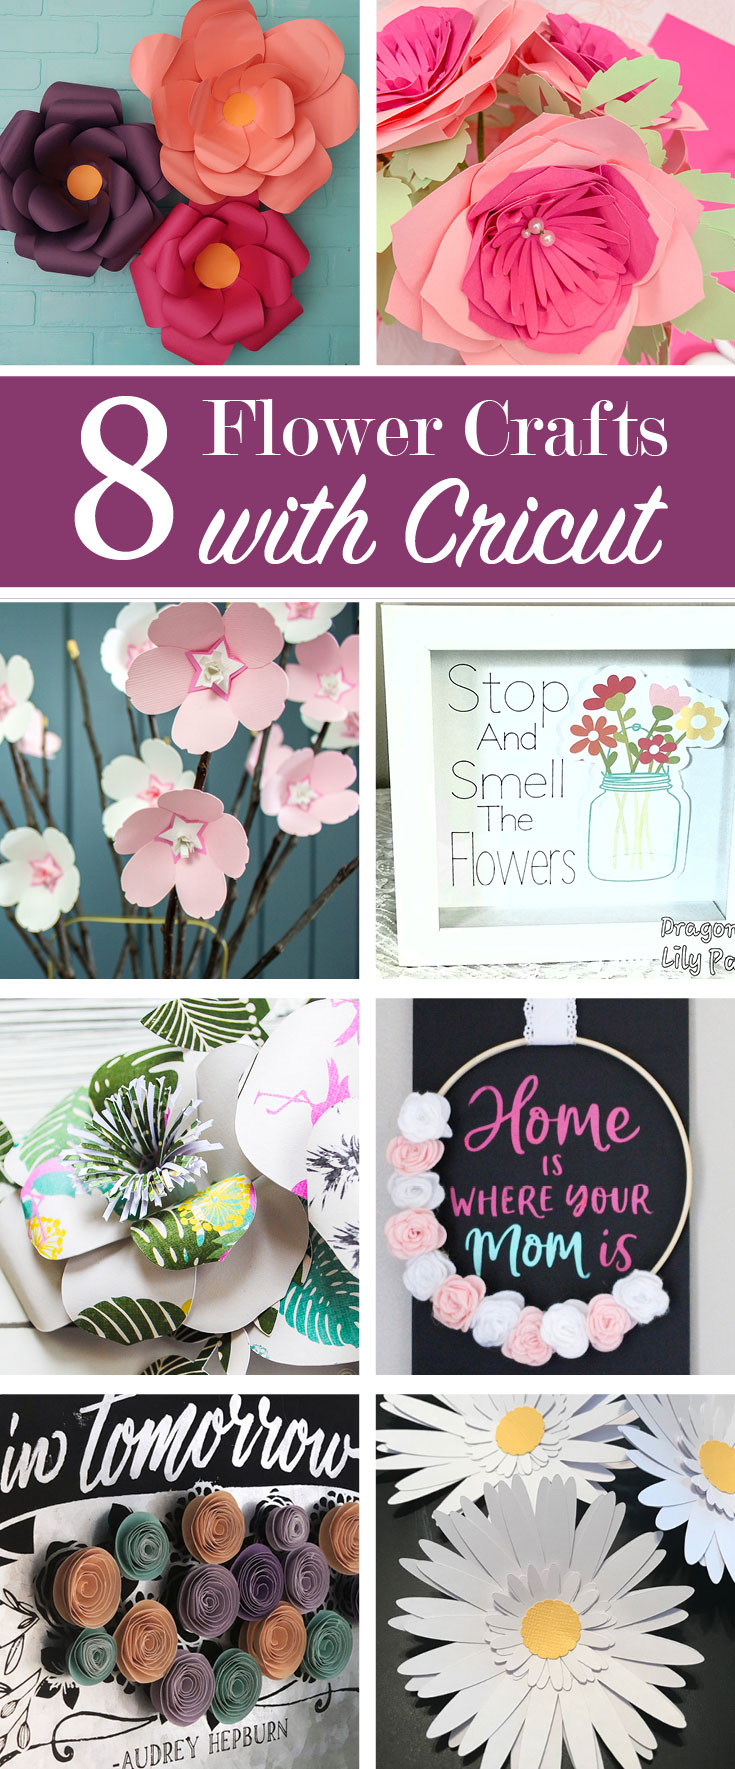 8_Flower_Crafts-with-Cricut.jpg